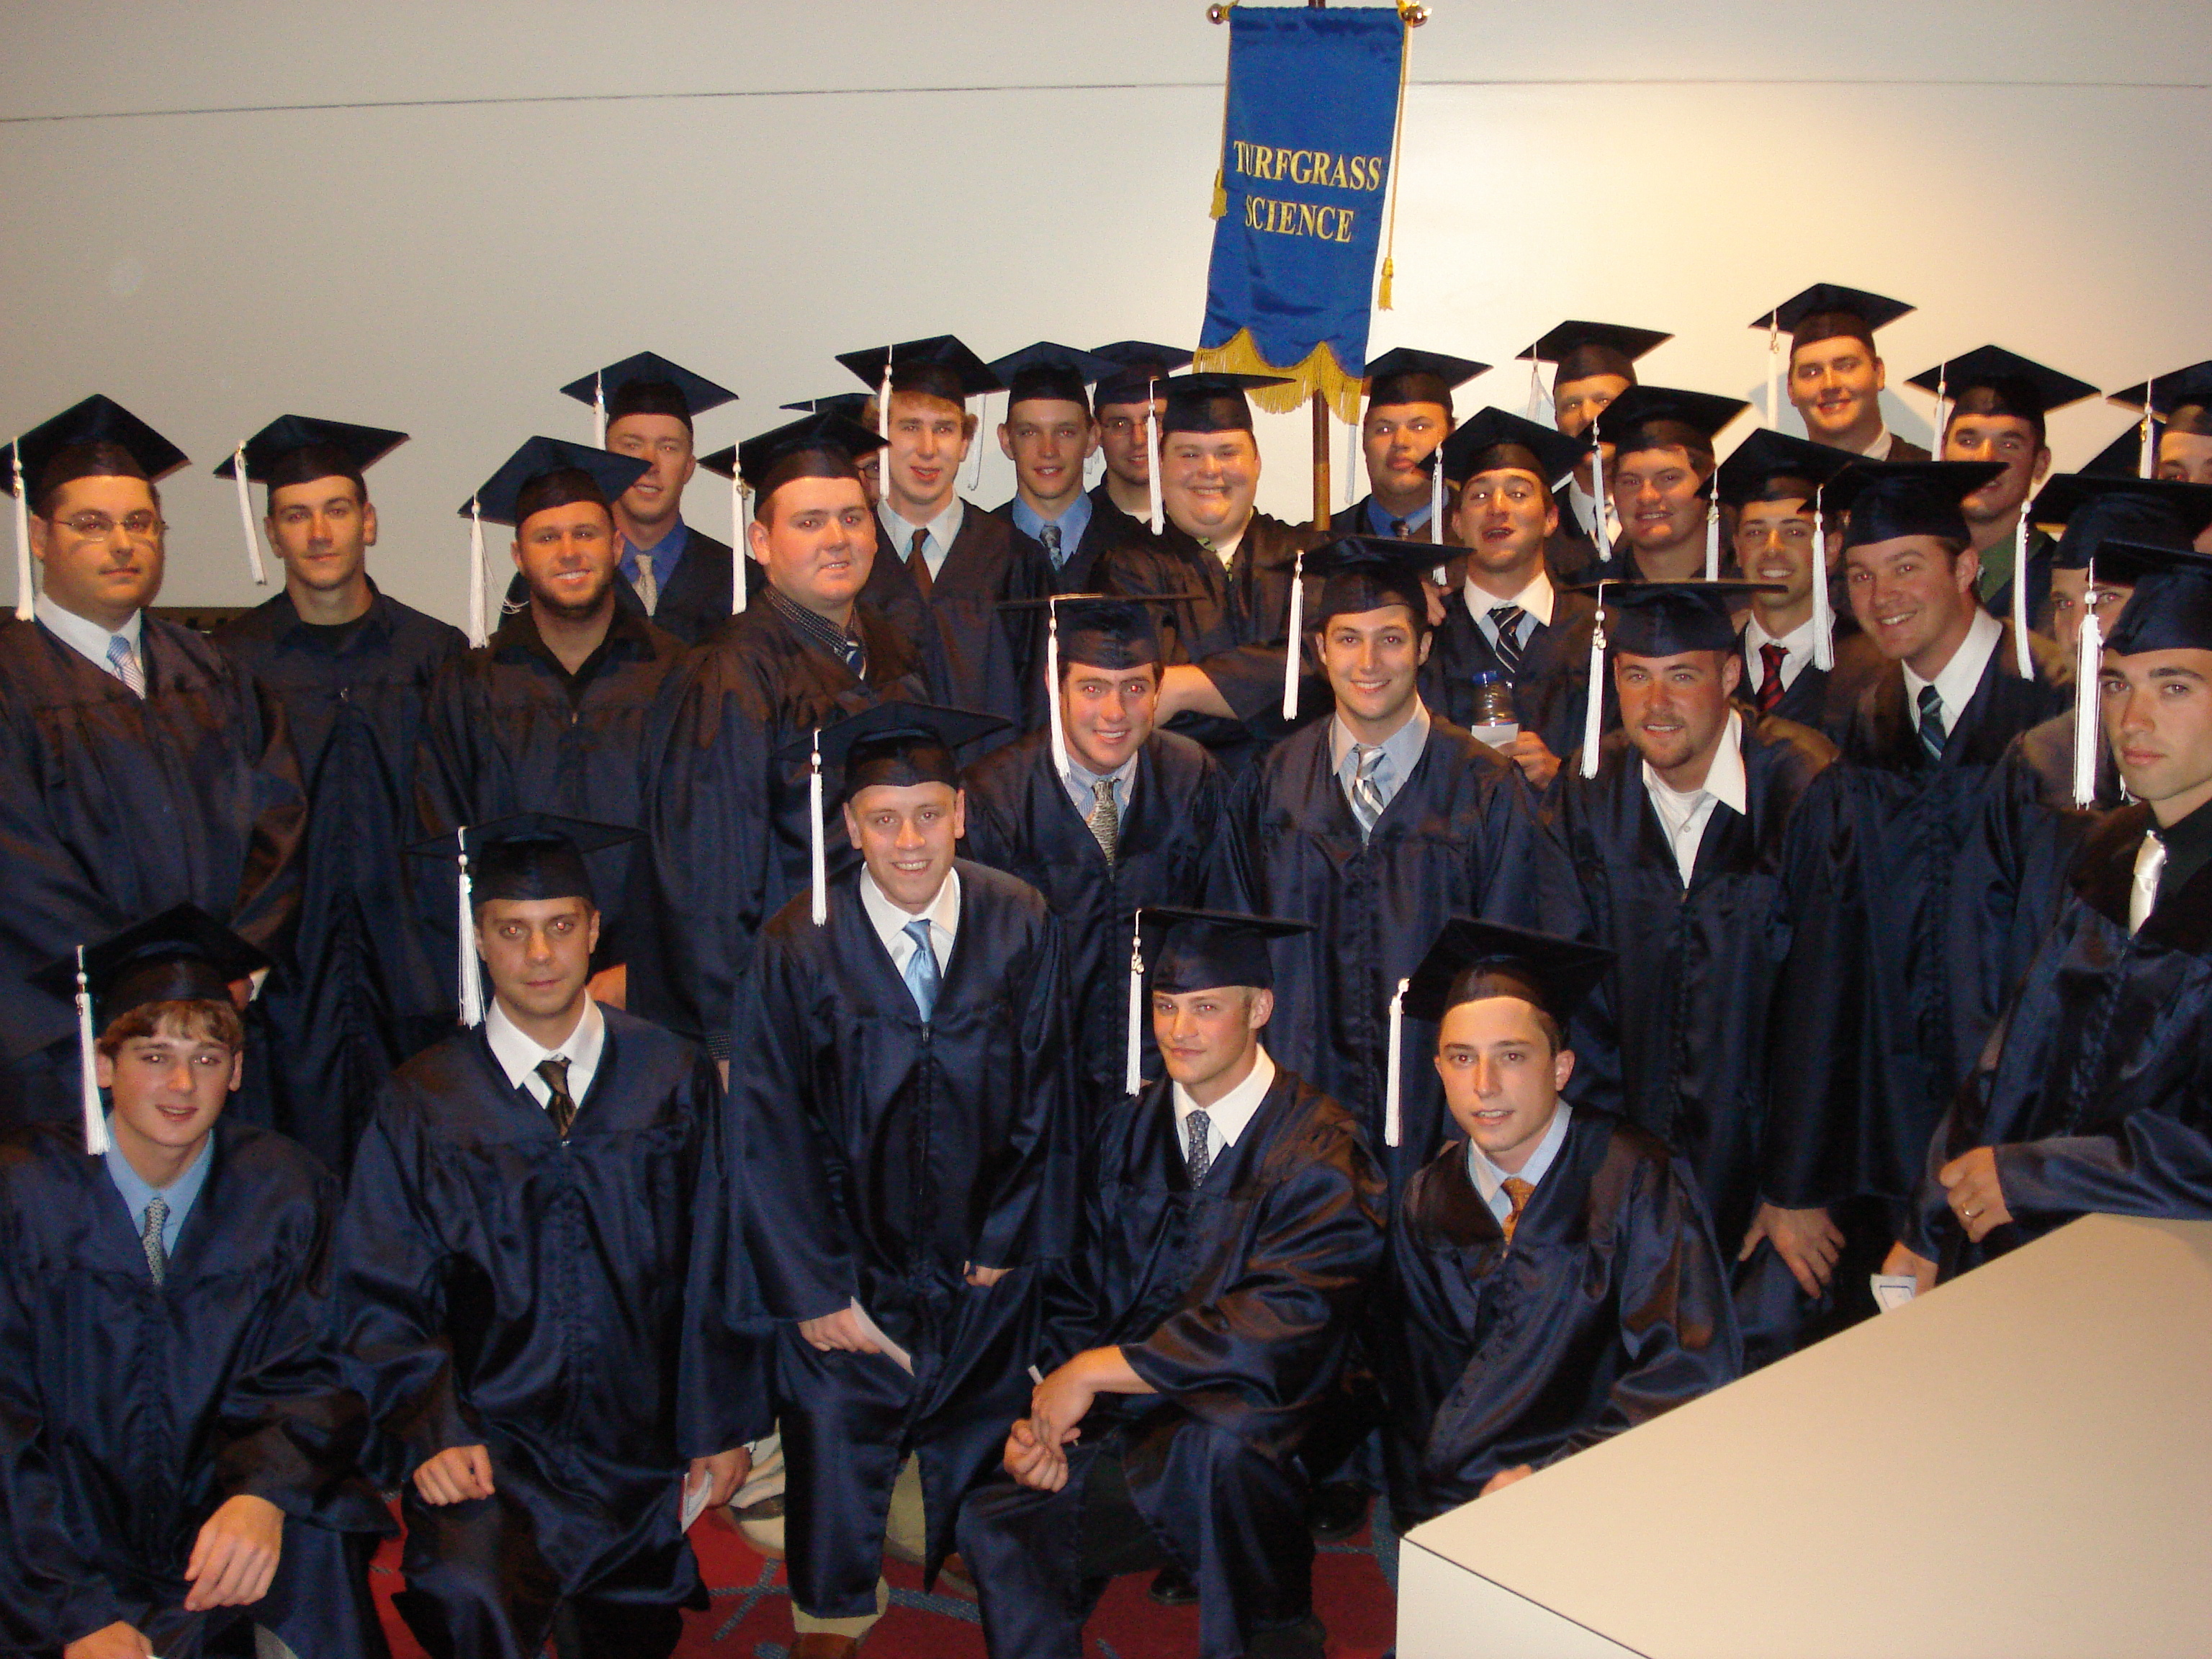 penn state turfgrass science class of 2010 pennstateturf dsc01505 jpg penn state had over